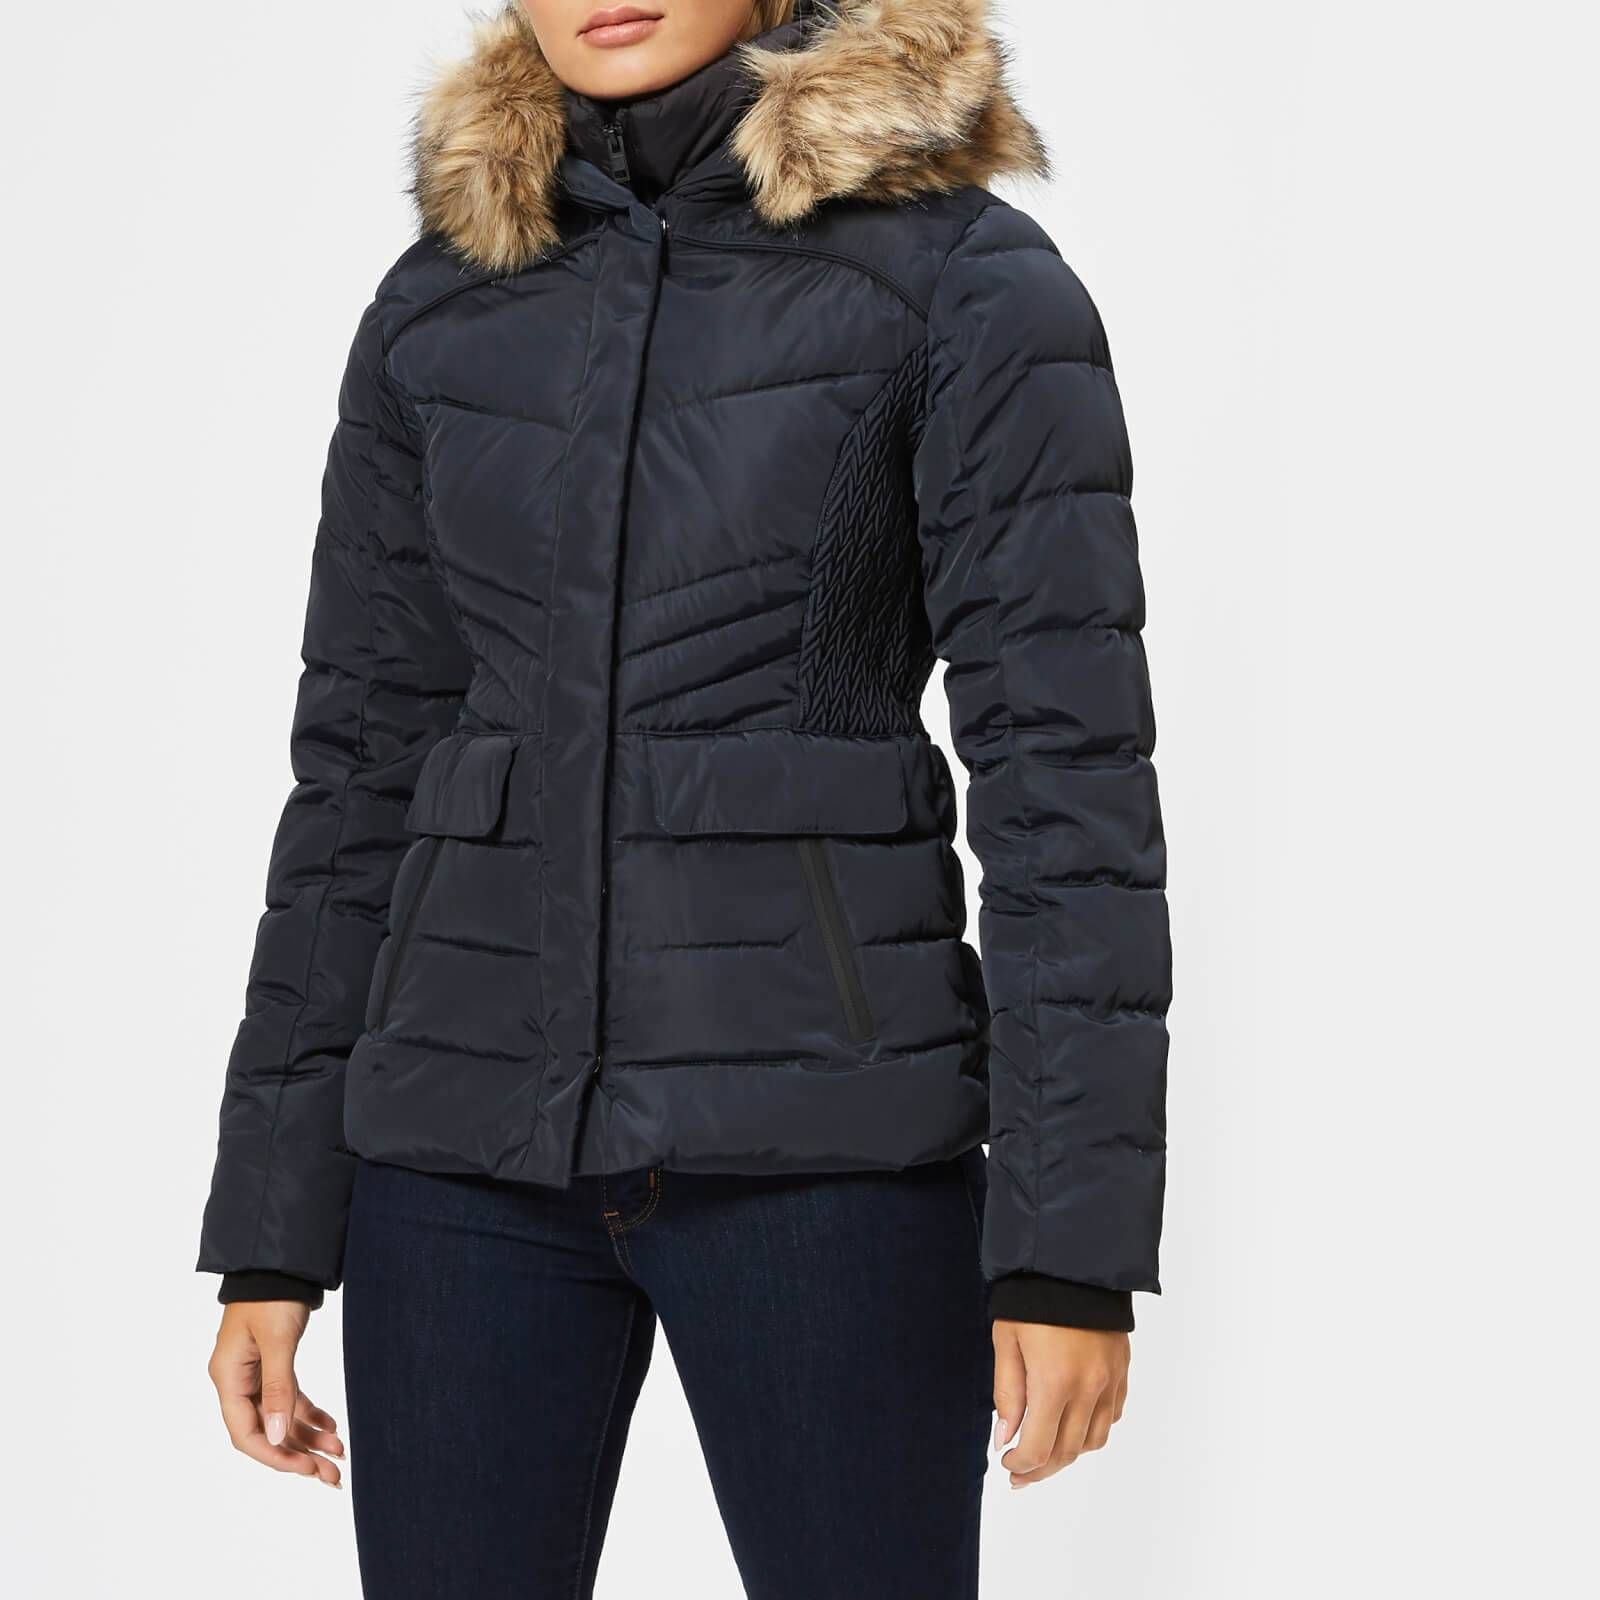 Superdry Women's Glacier Biker Jacket - Luxe Navy - UK 14 - Blue